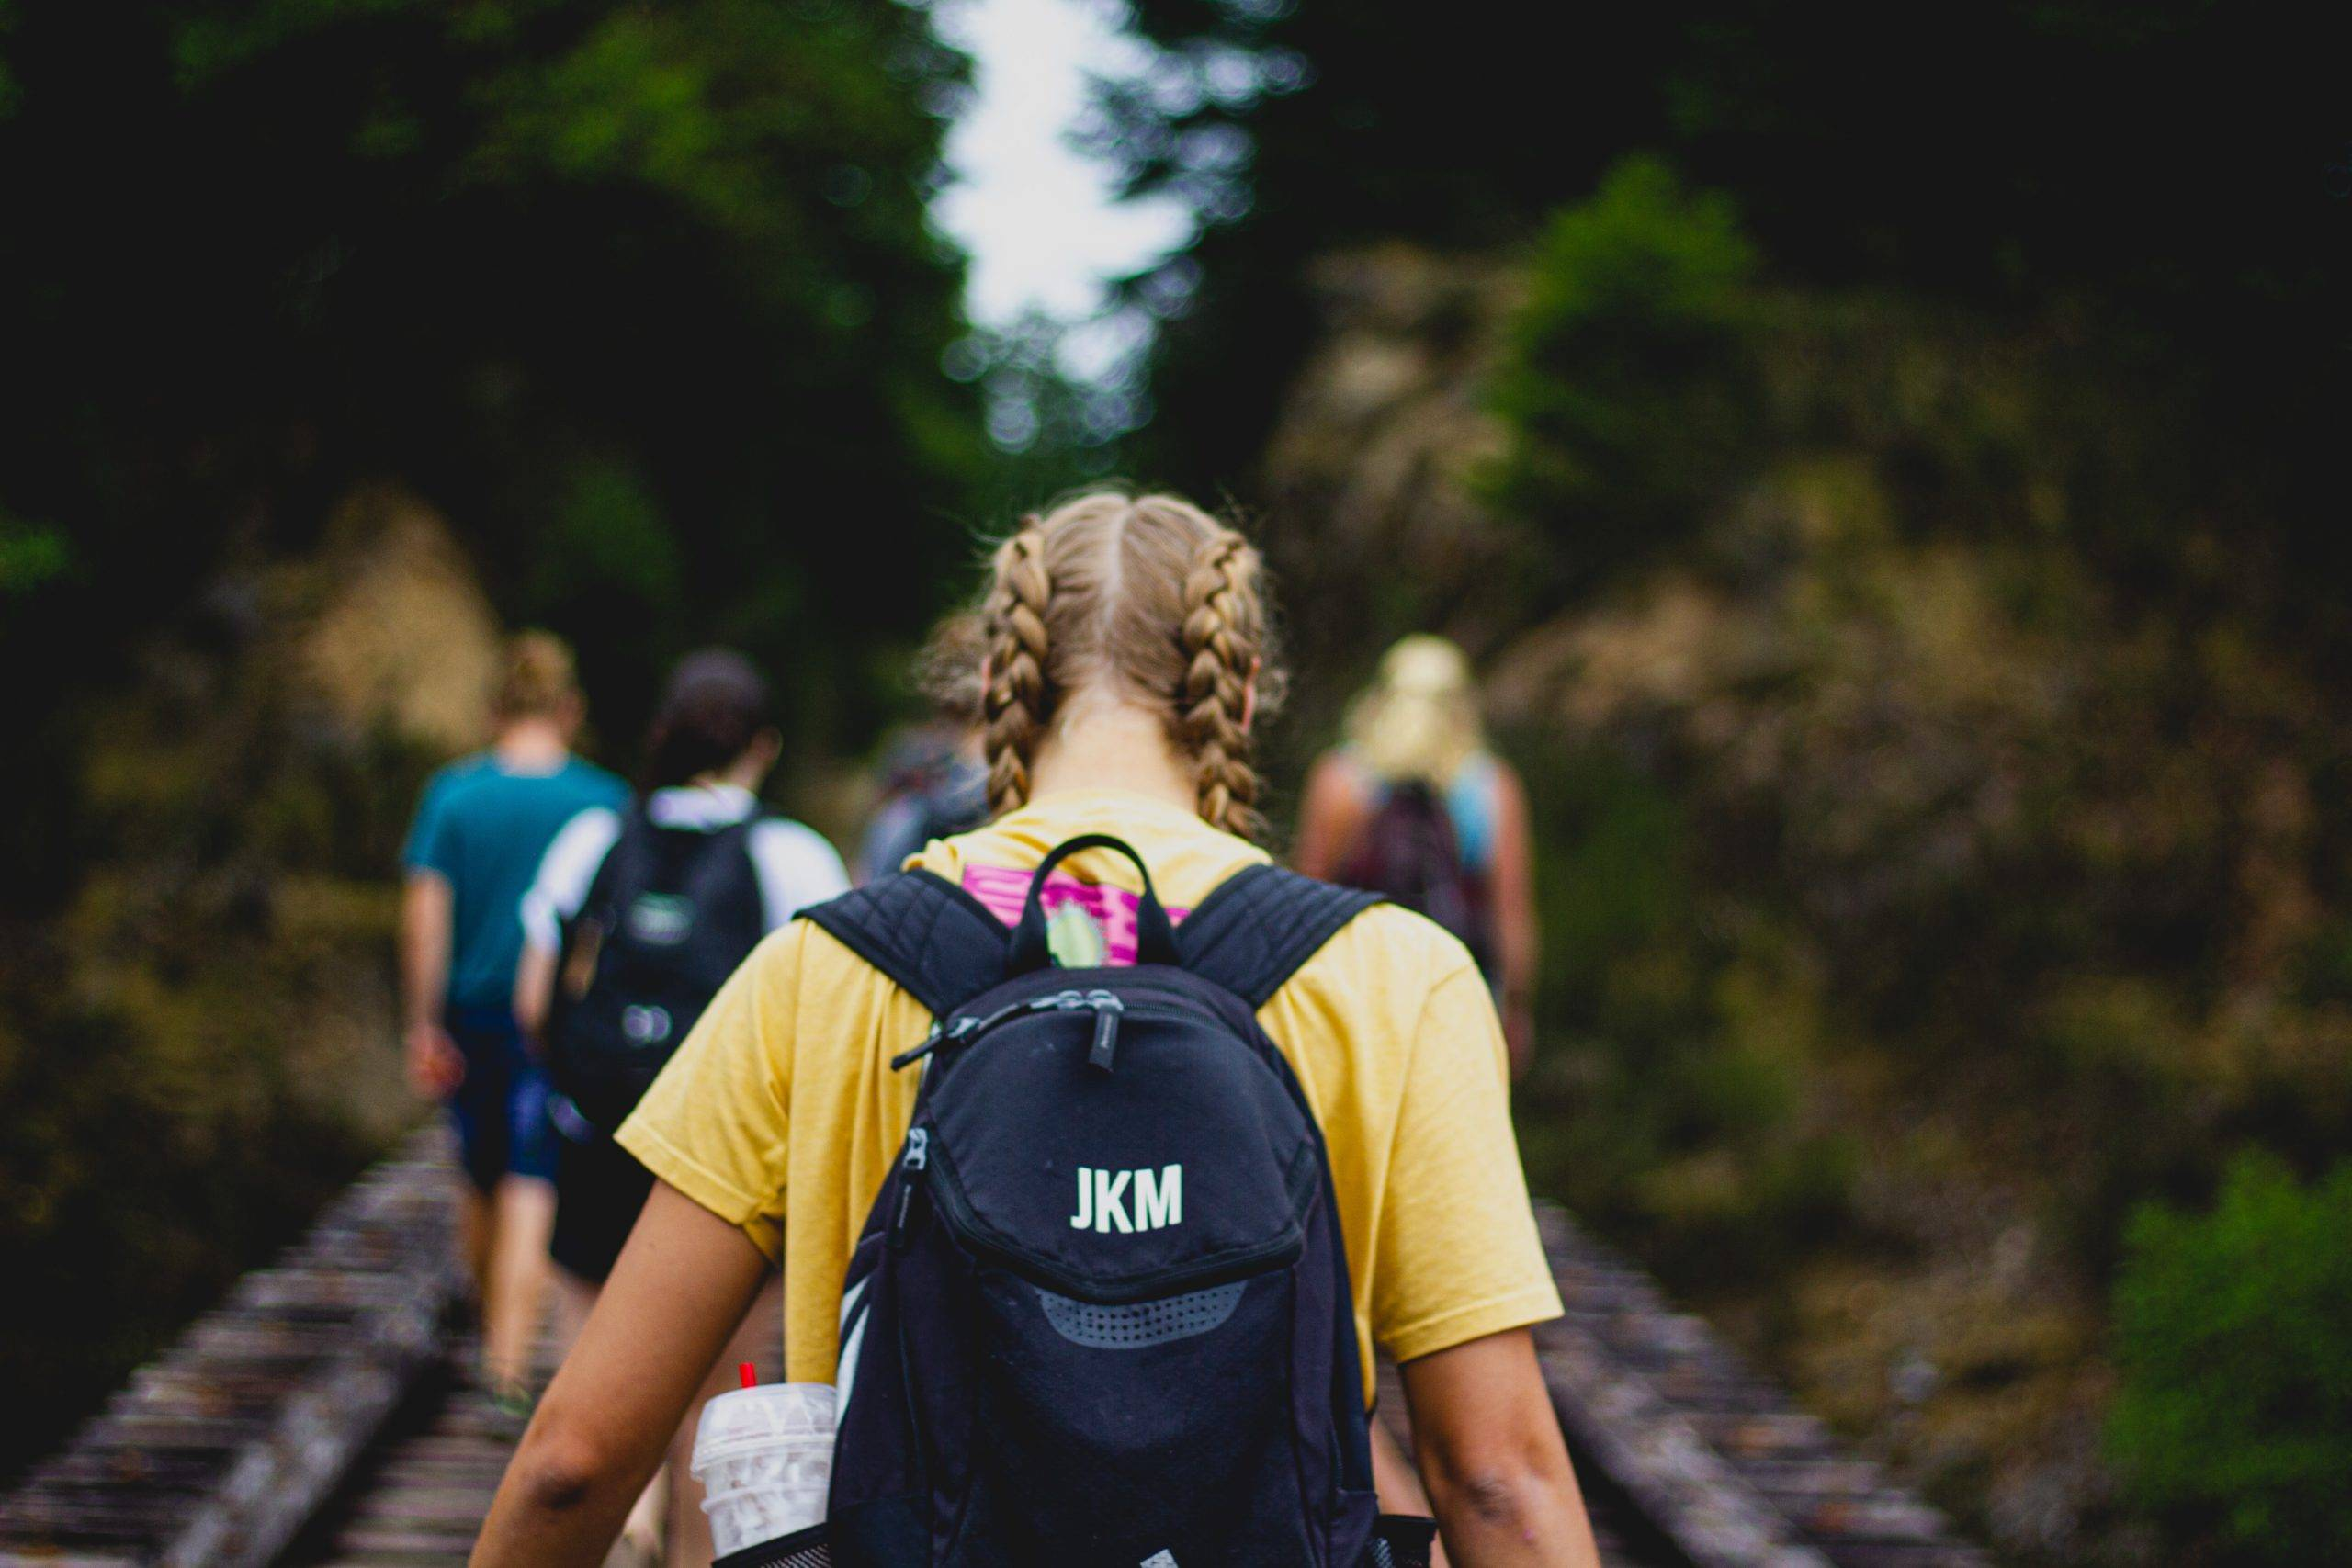 Girl with braided pigtails and black backpack